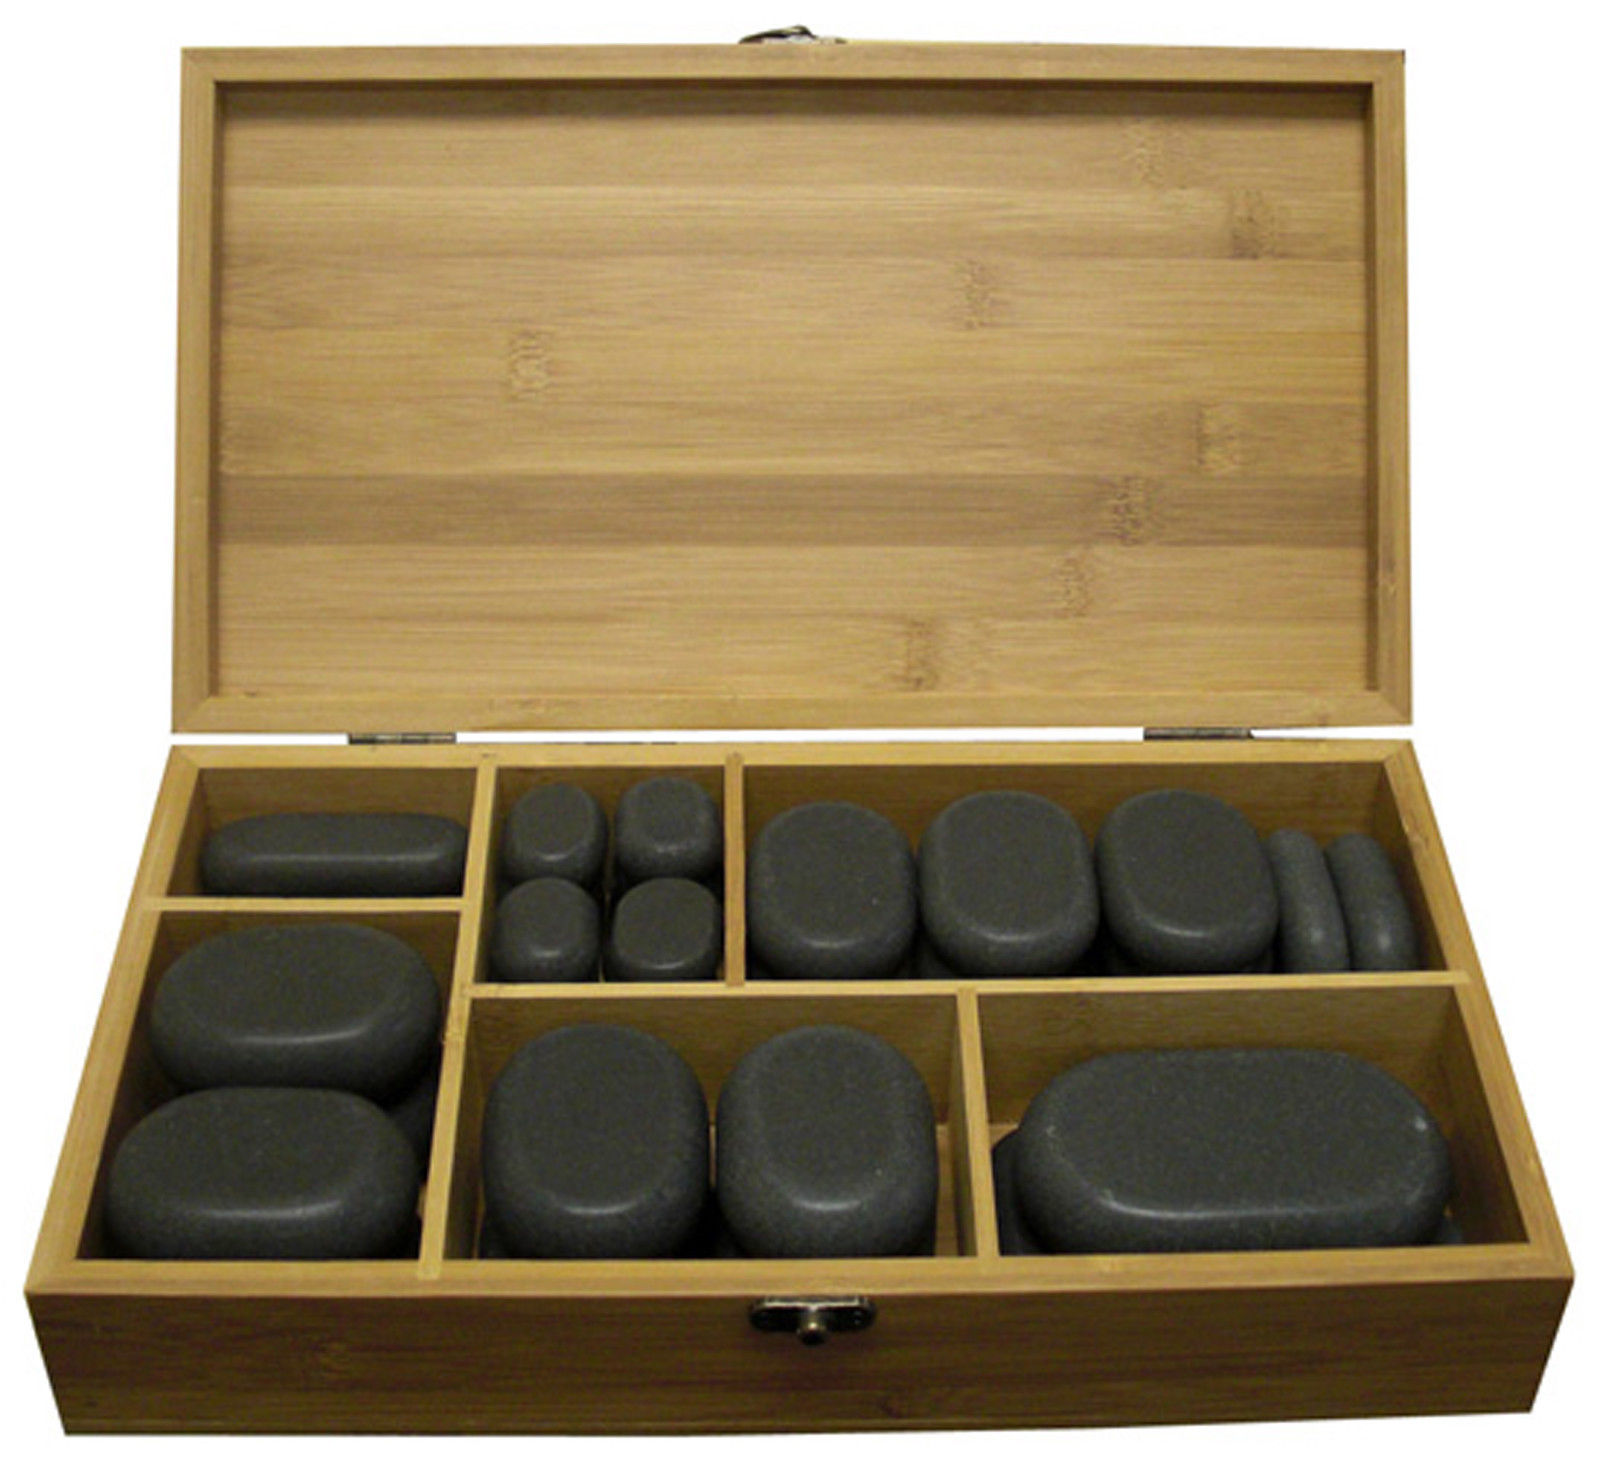 Hot Stone Massage Kit 45 Pcs Brody Massage